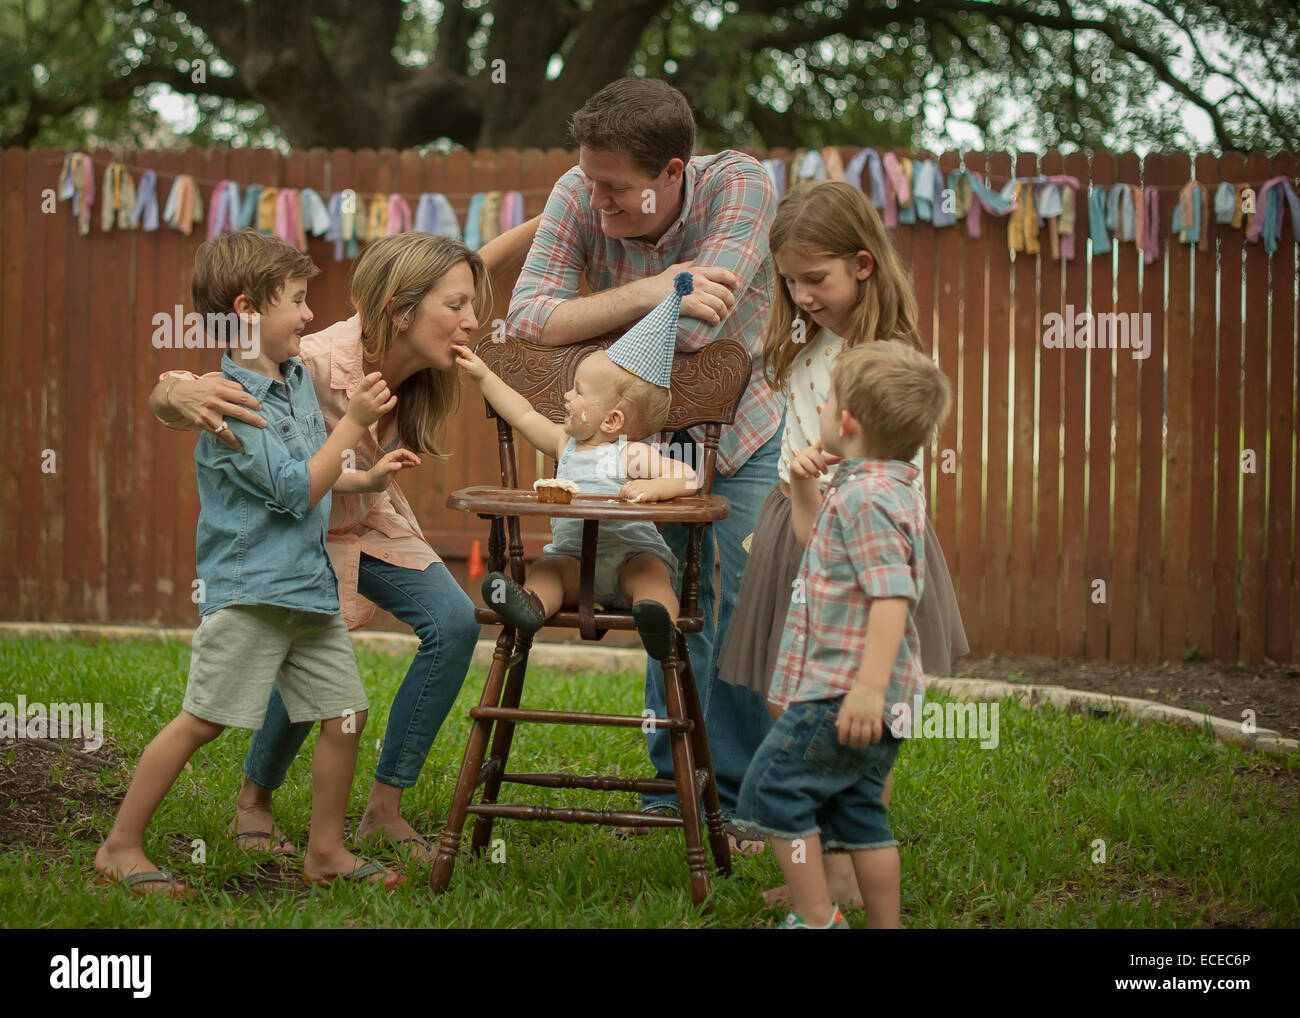 Family celebrating baby boys' first birthday in back yard - Stock Image